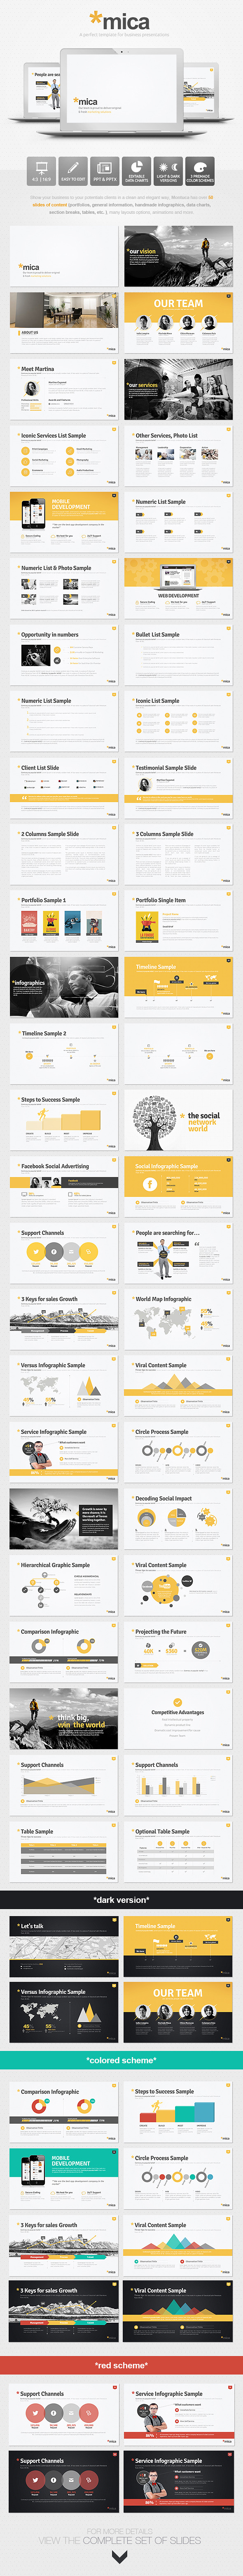 Mica powerpoint presentation template by eamejia graphicriver mica powerpoint presentation template toneelgroepblik Gallery